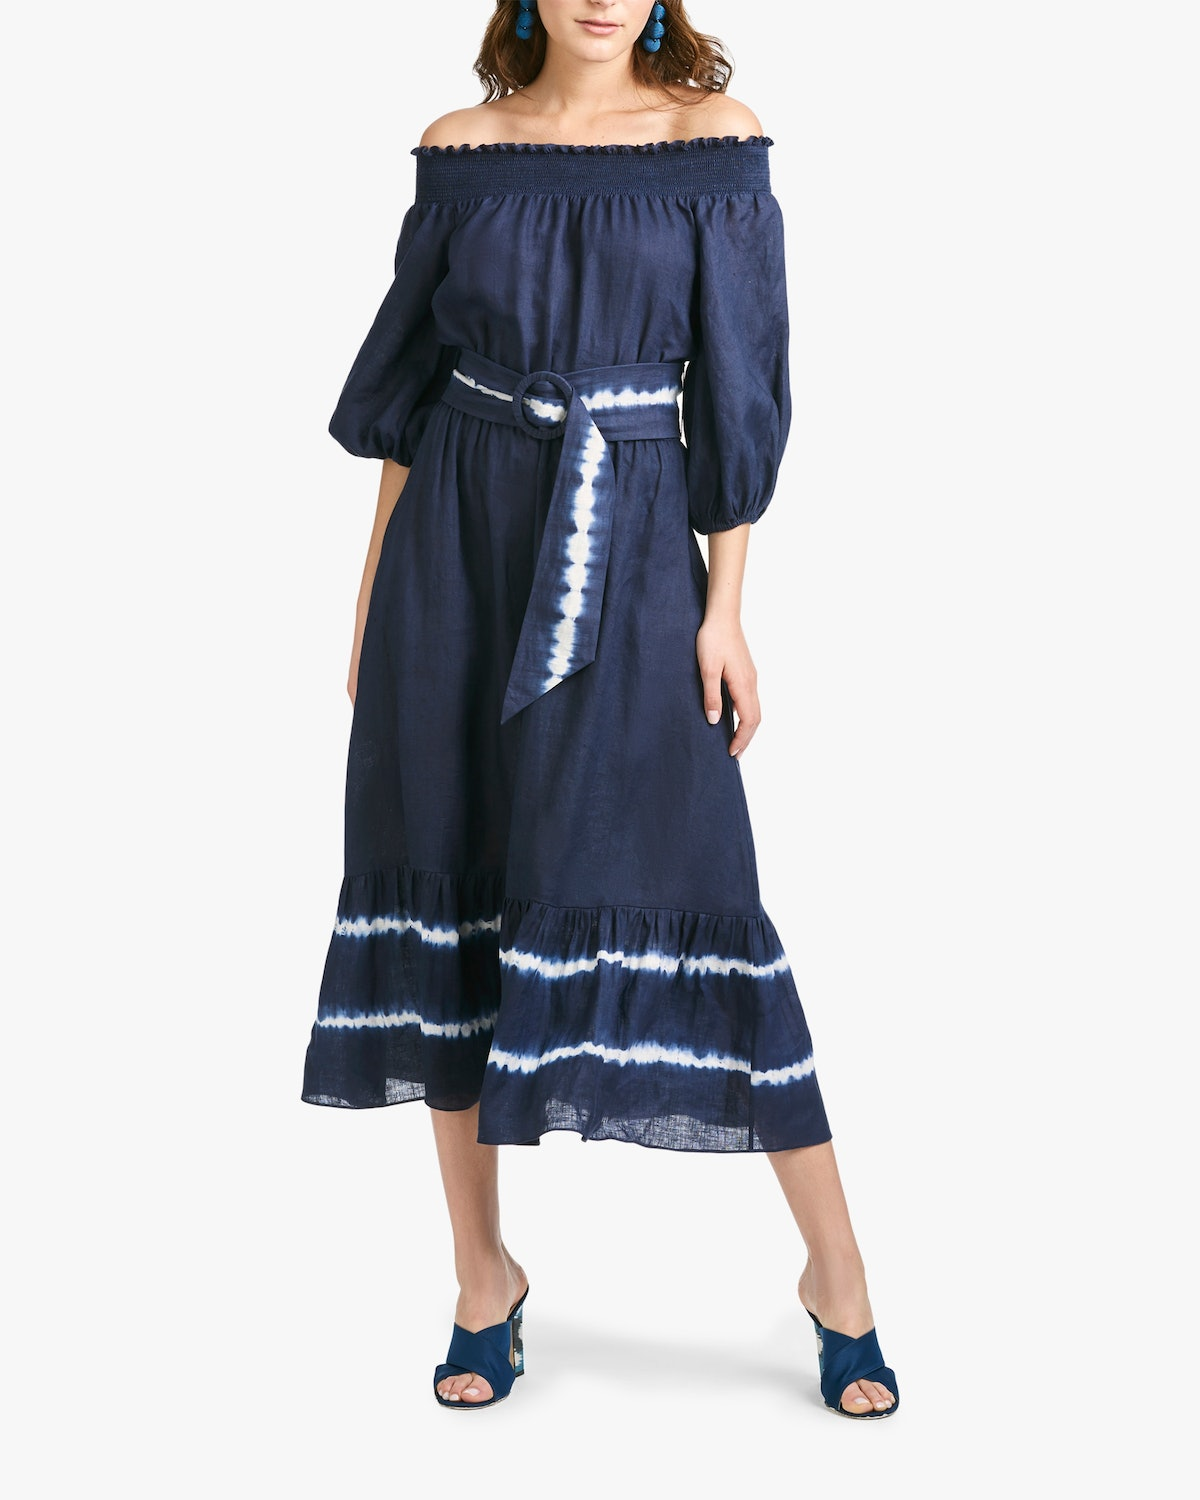 Sachin and Babi's Reese Off-Shoulder Dress with a tie-dye belt and hem.